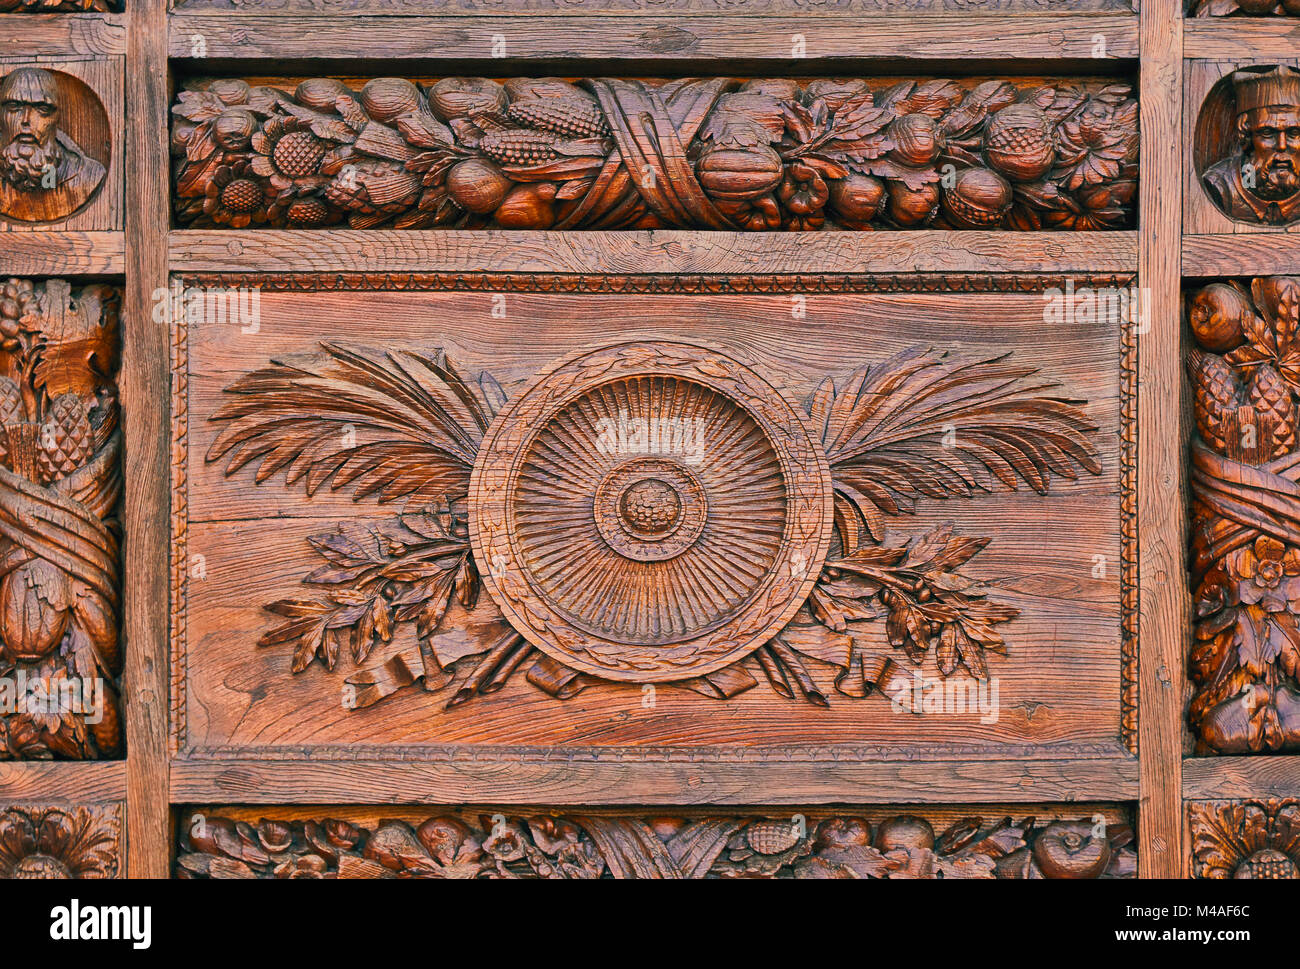 Detail of a carved pattern on the wooden door of the basilica di